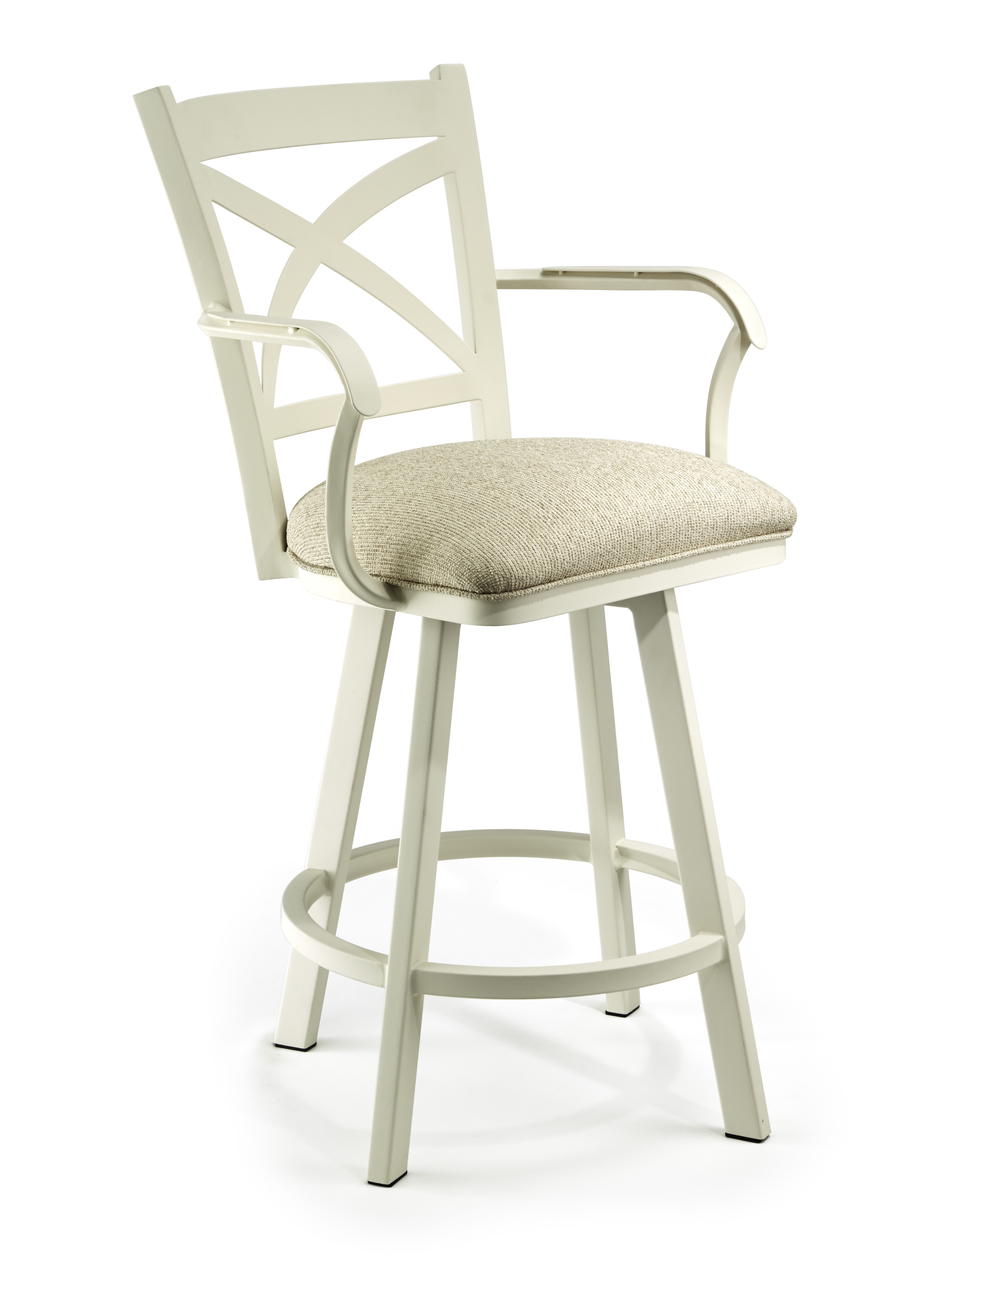 Wesley Allen - Swivel Stool with Back and Arms